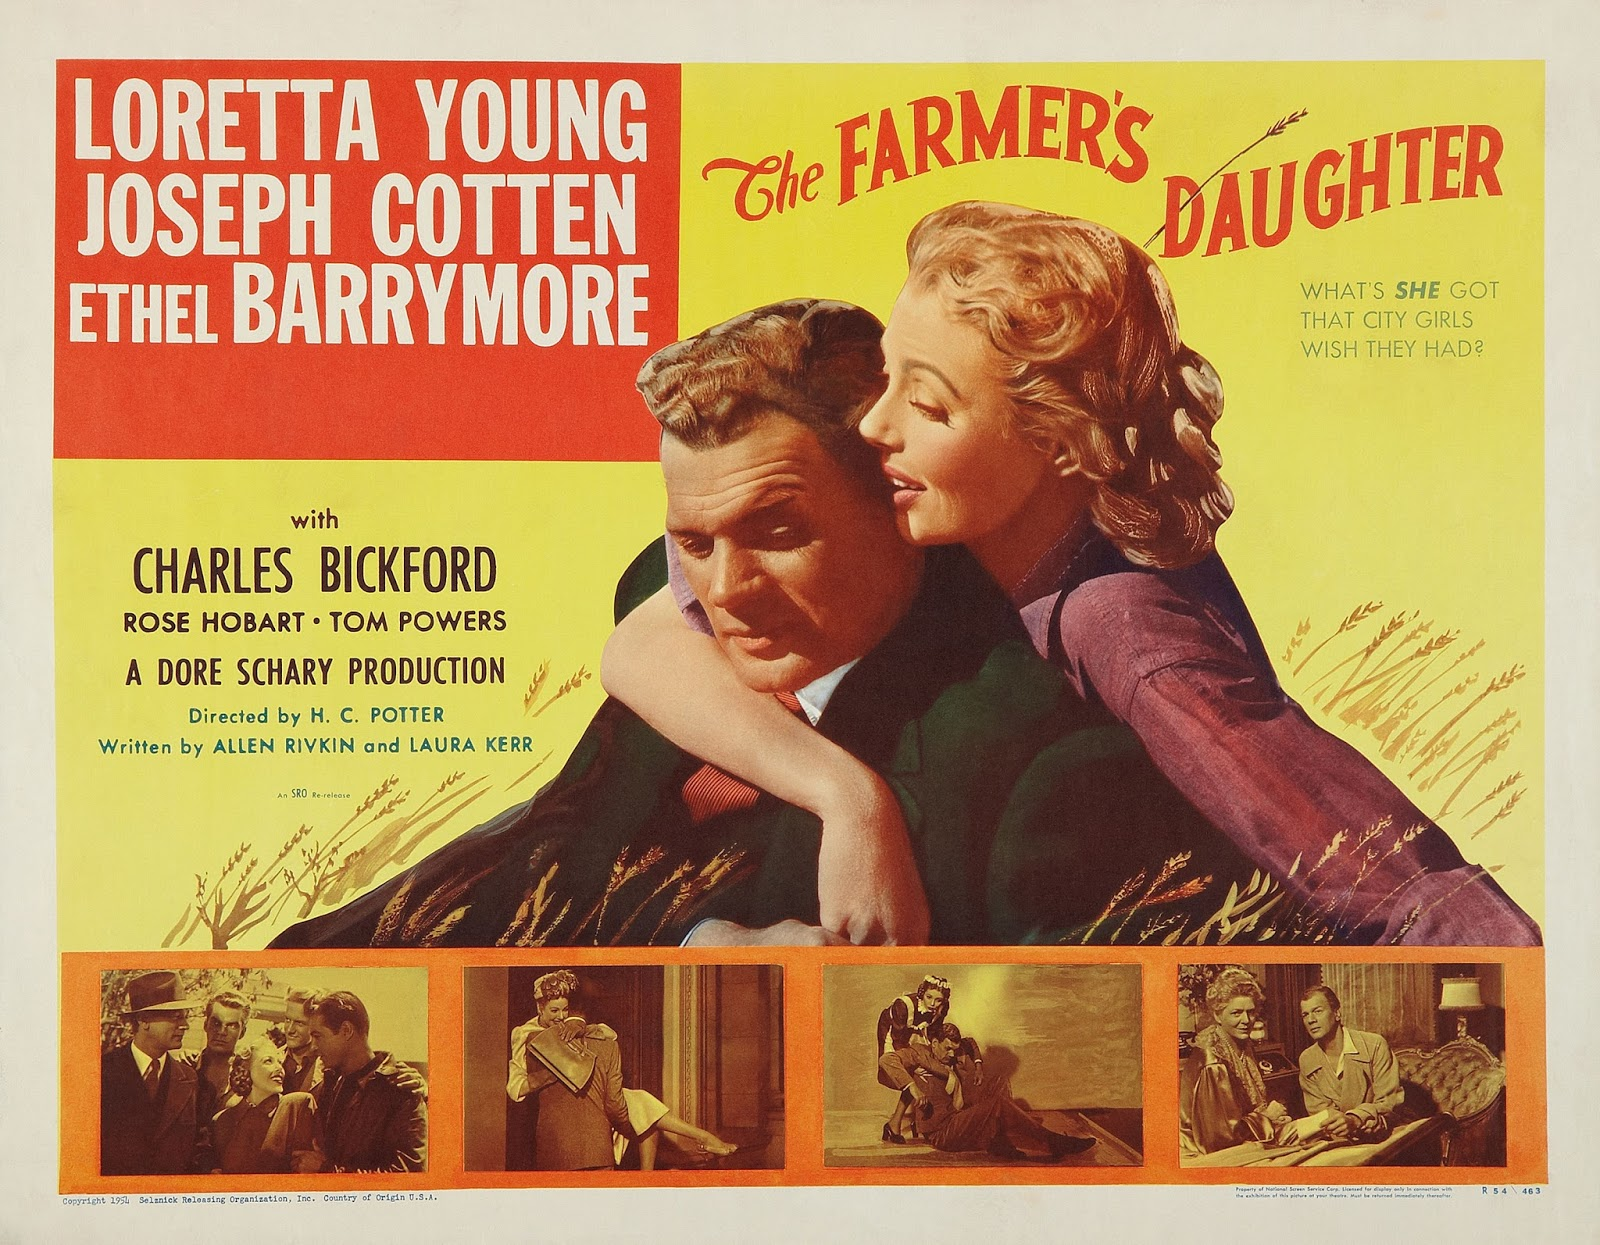 Farmer Daughter Loretta Young Dvd Loretta Young The Farmer's